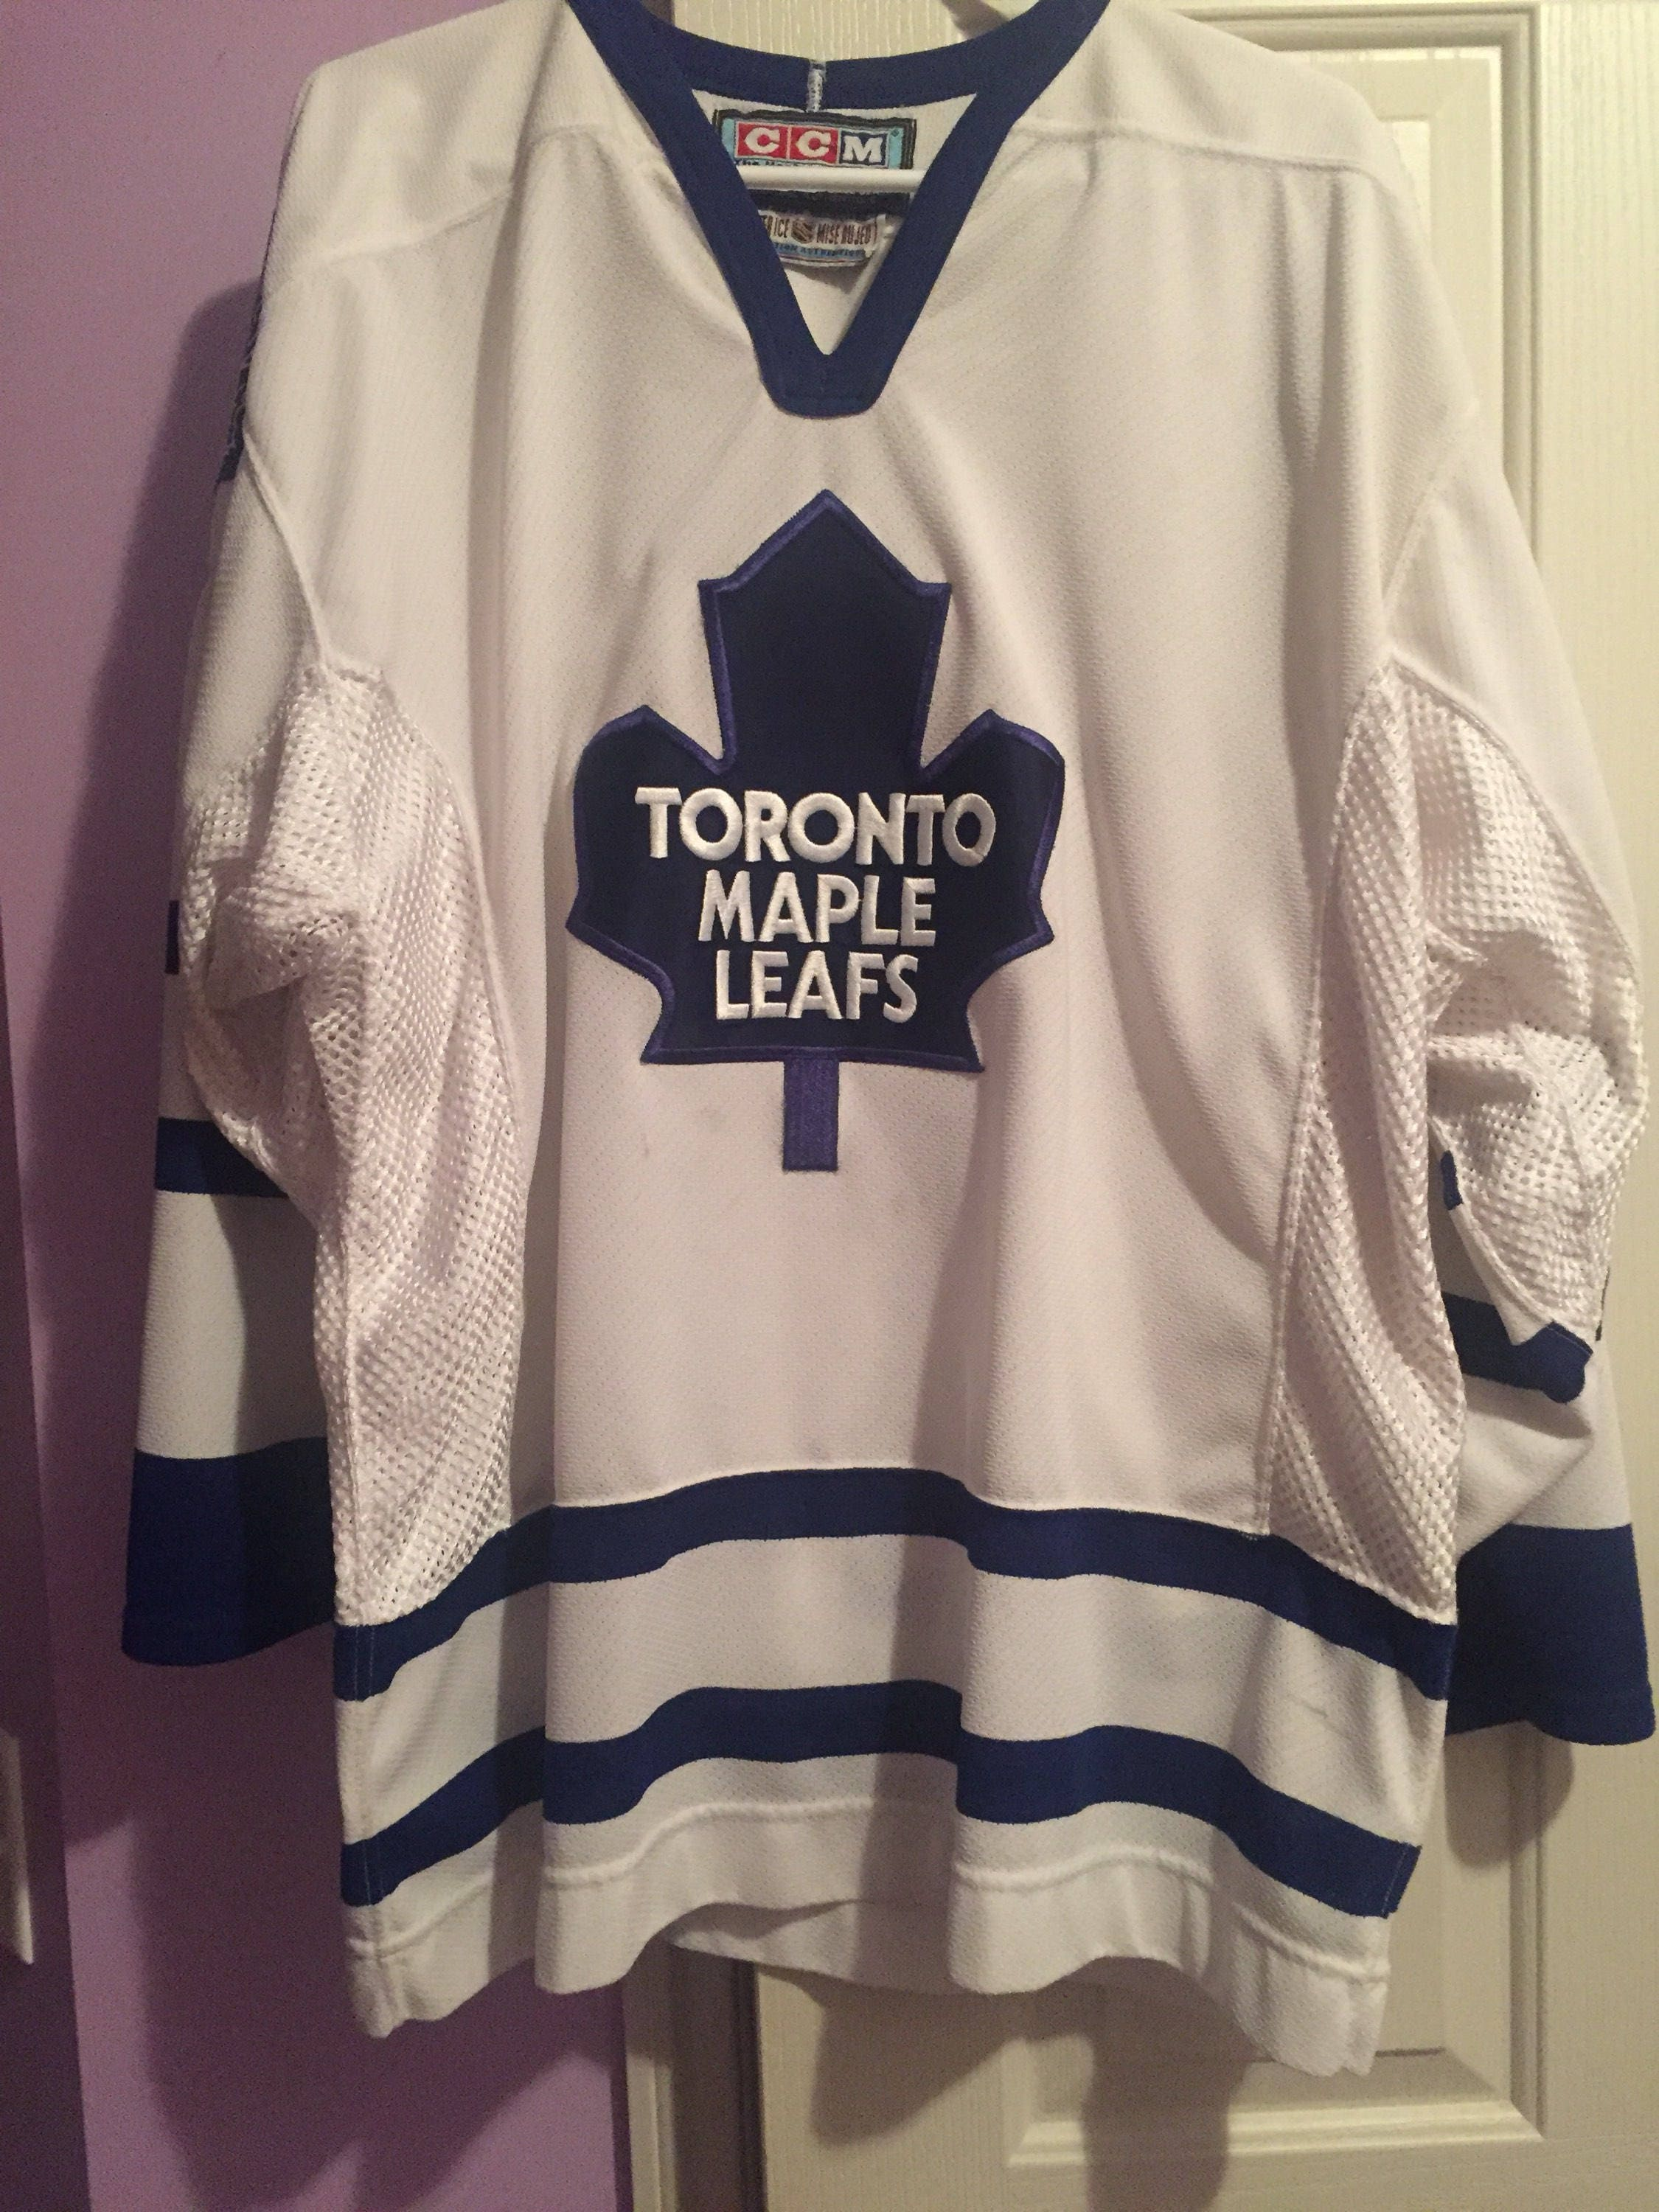 newest 7993a eb246 Vintage 90s Authentic Toronto Maple Leafs NHL Hockey Jersey ...